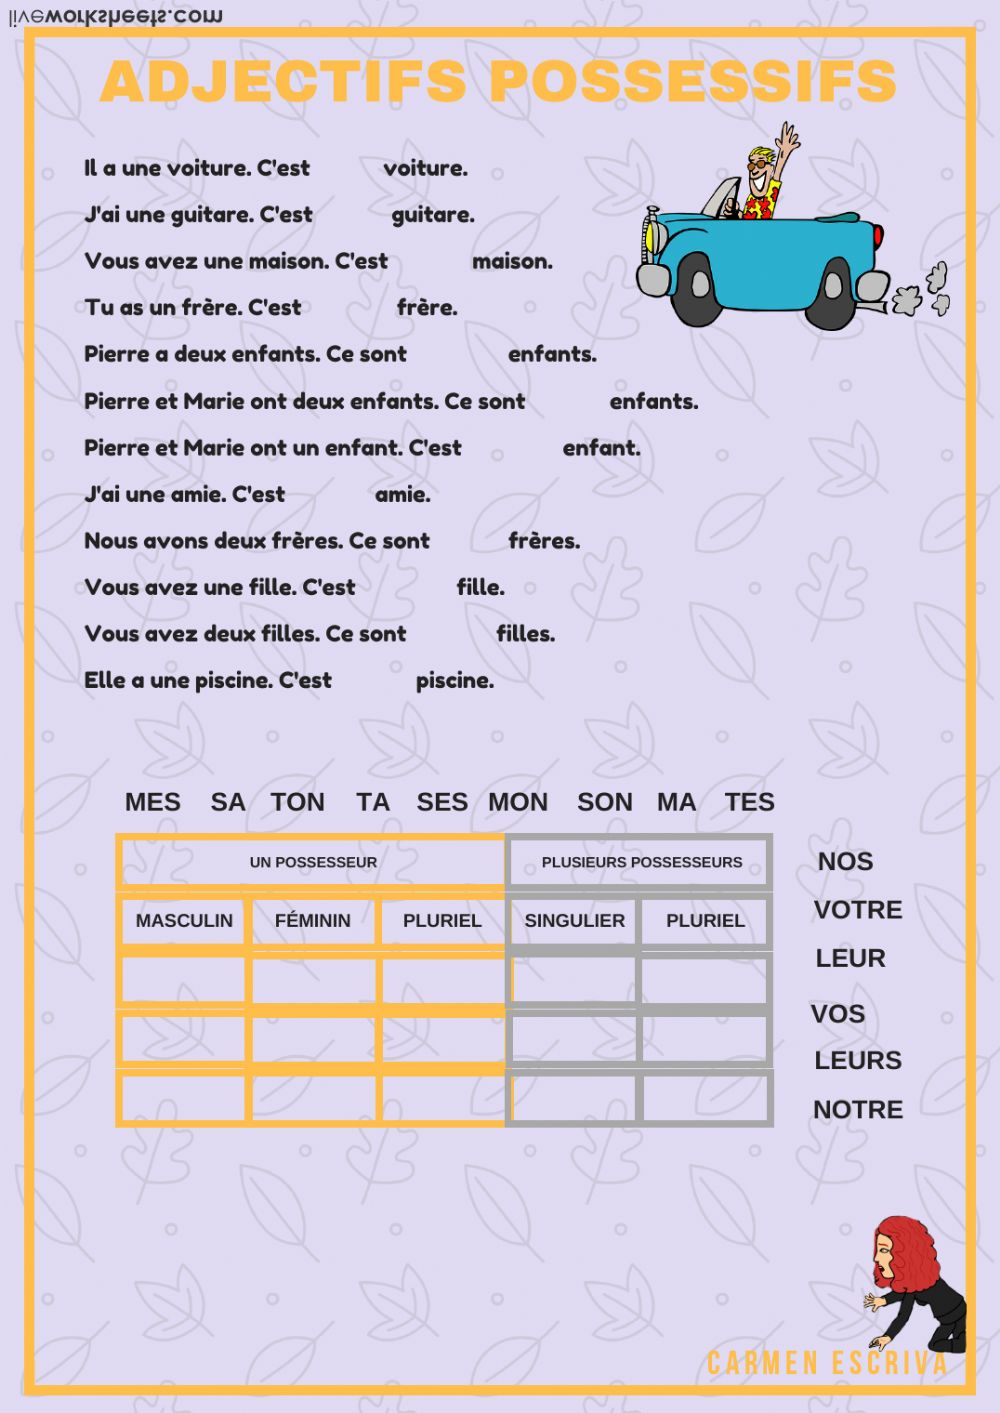 Les adjectifs possessifs: Adjectifs possessifs worksheet